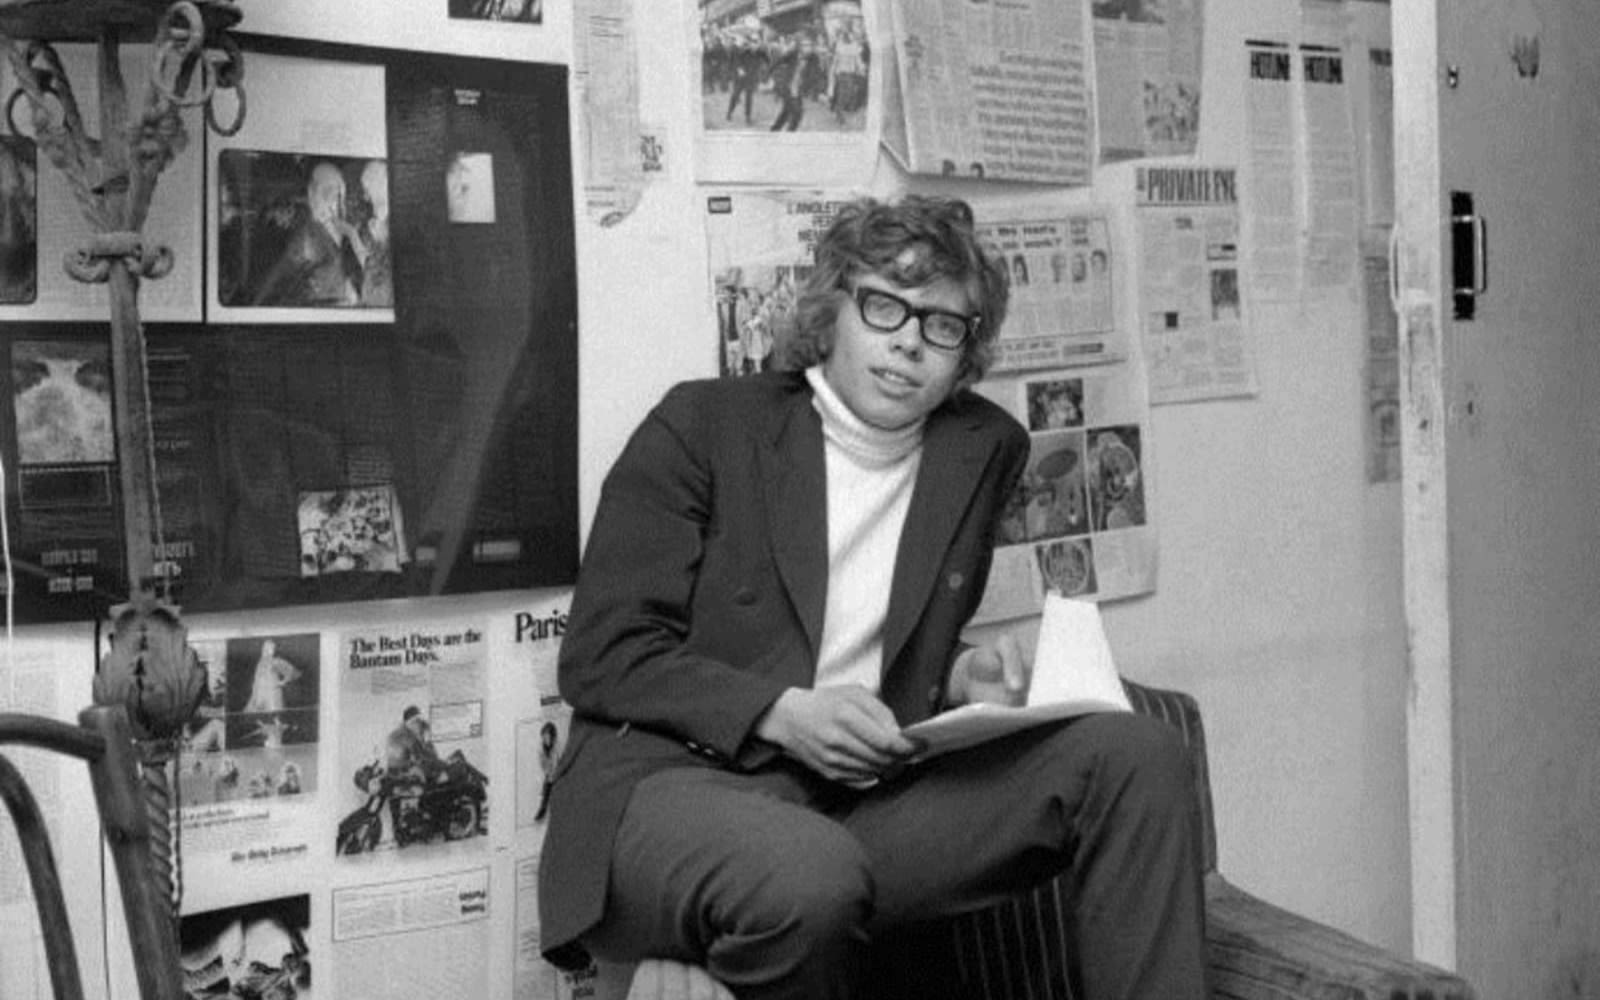 a young Richard Branson poses in front of newspaper clippings for Student Magazine